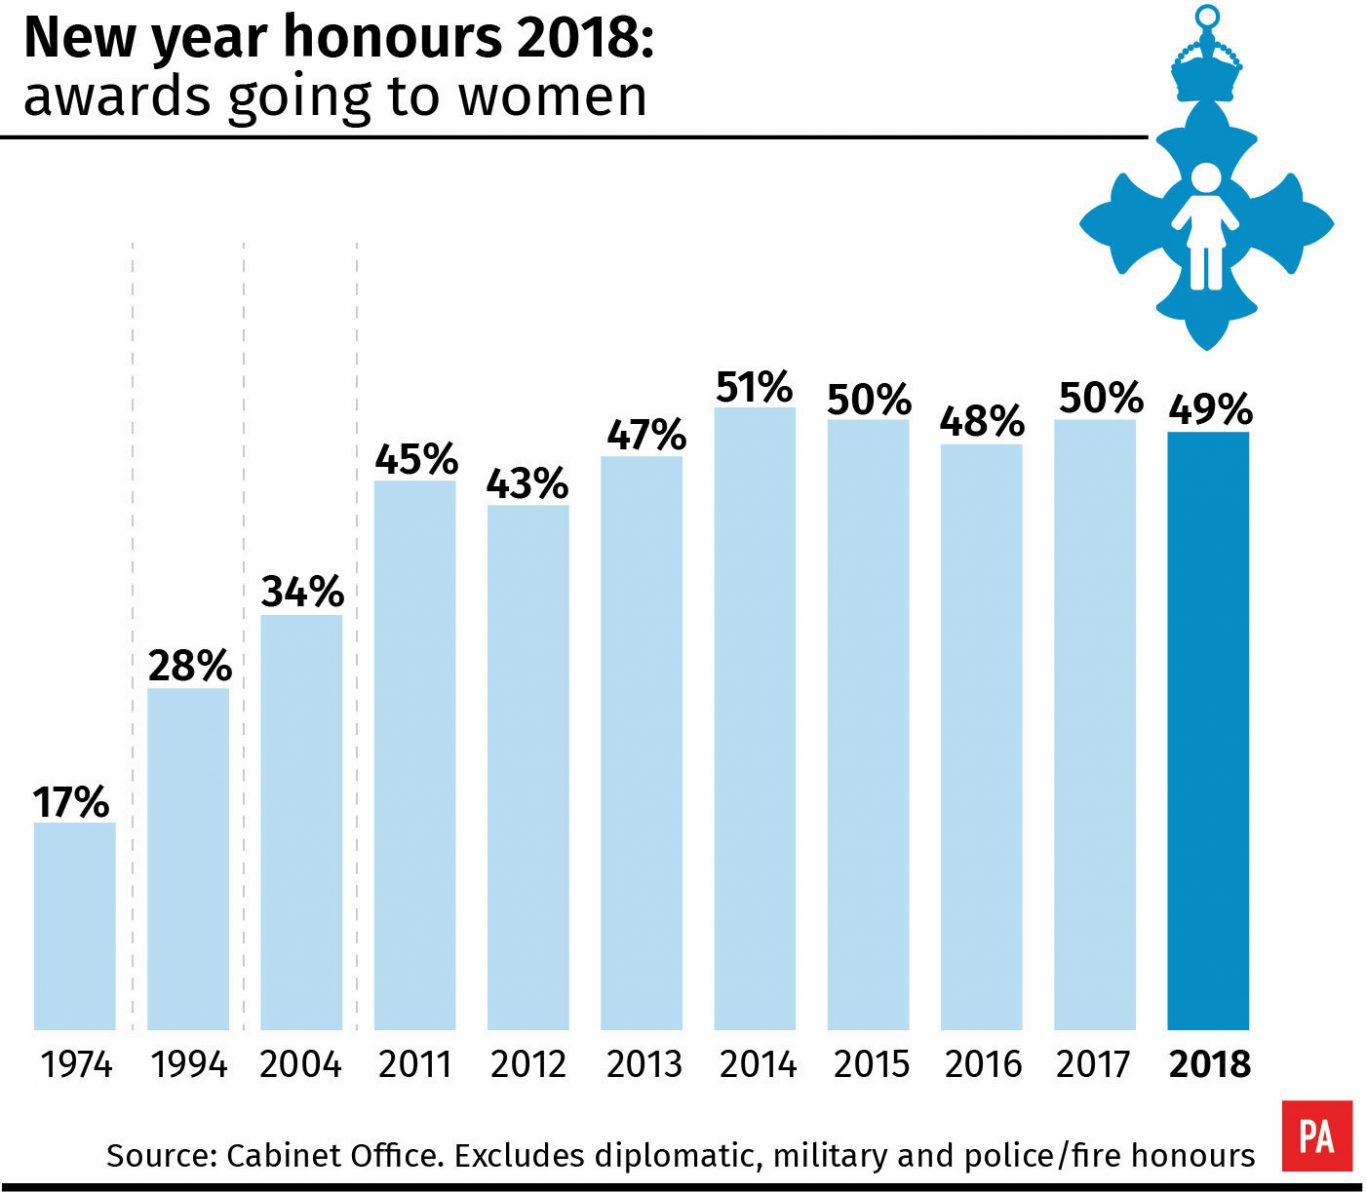 New year honours 2018: awards going to women